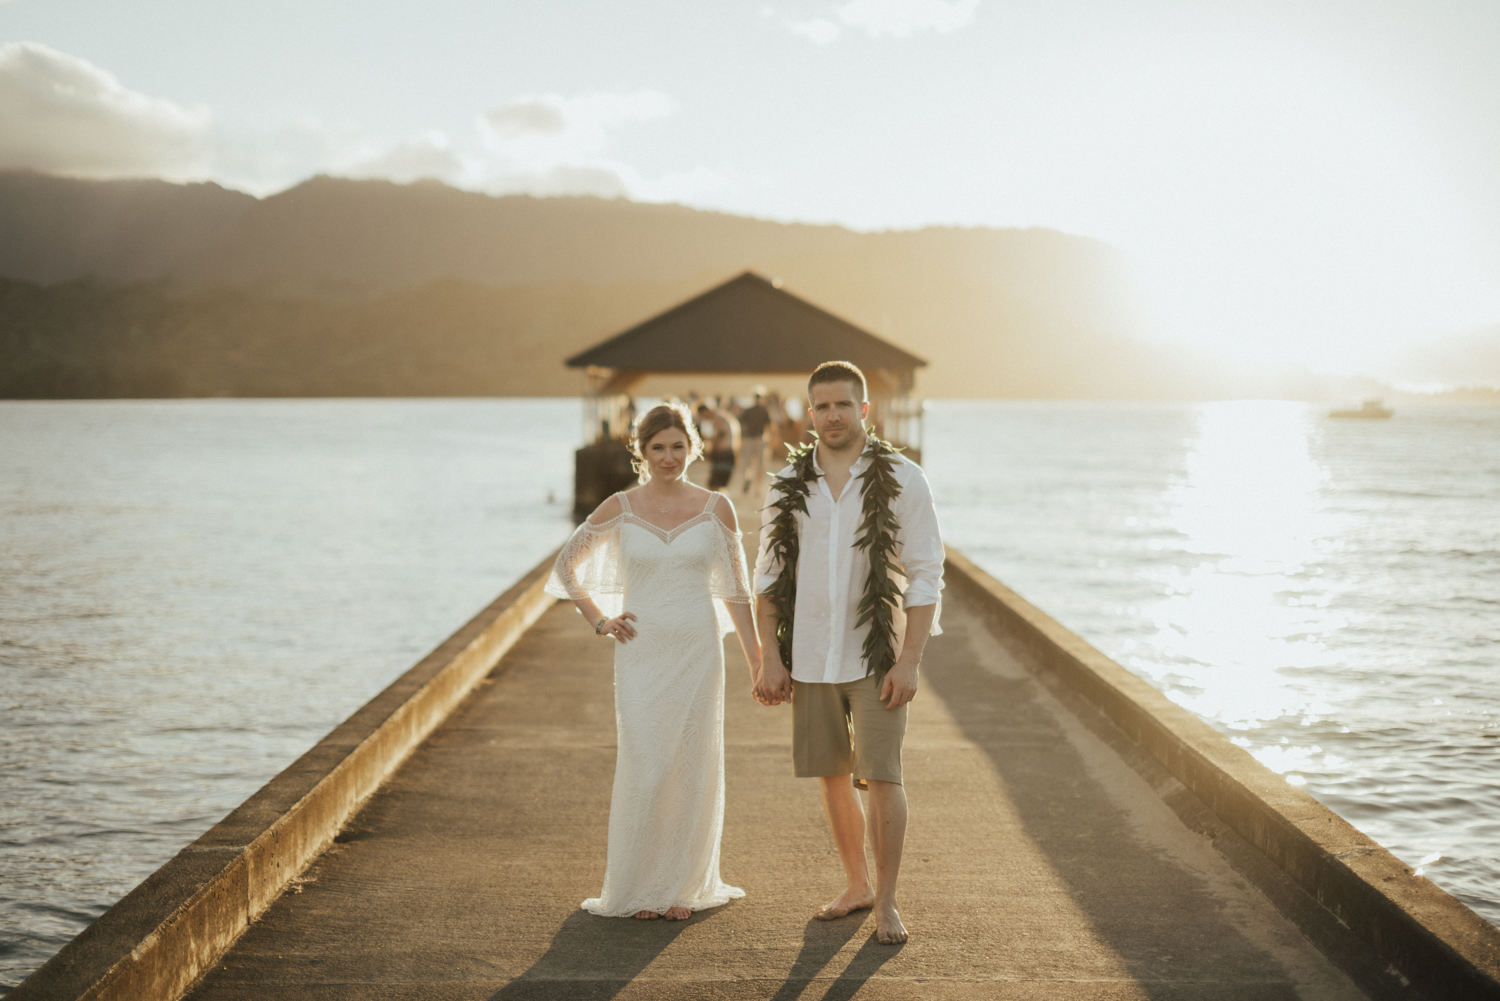 Kauai-elopement-photographer-87.jpg